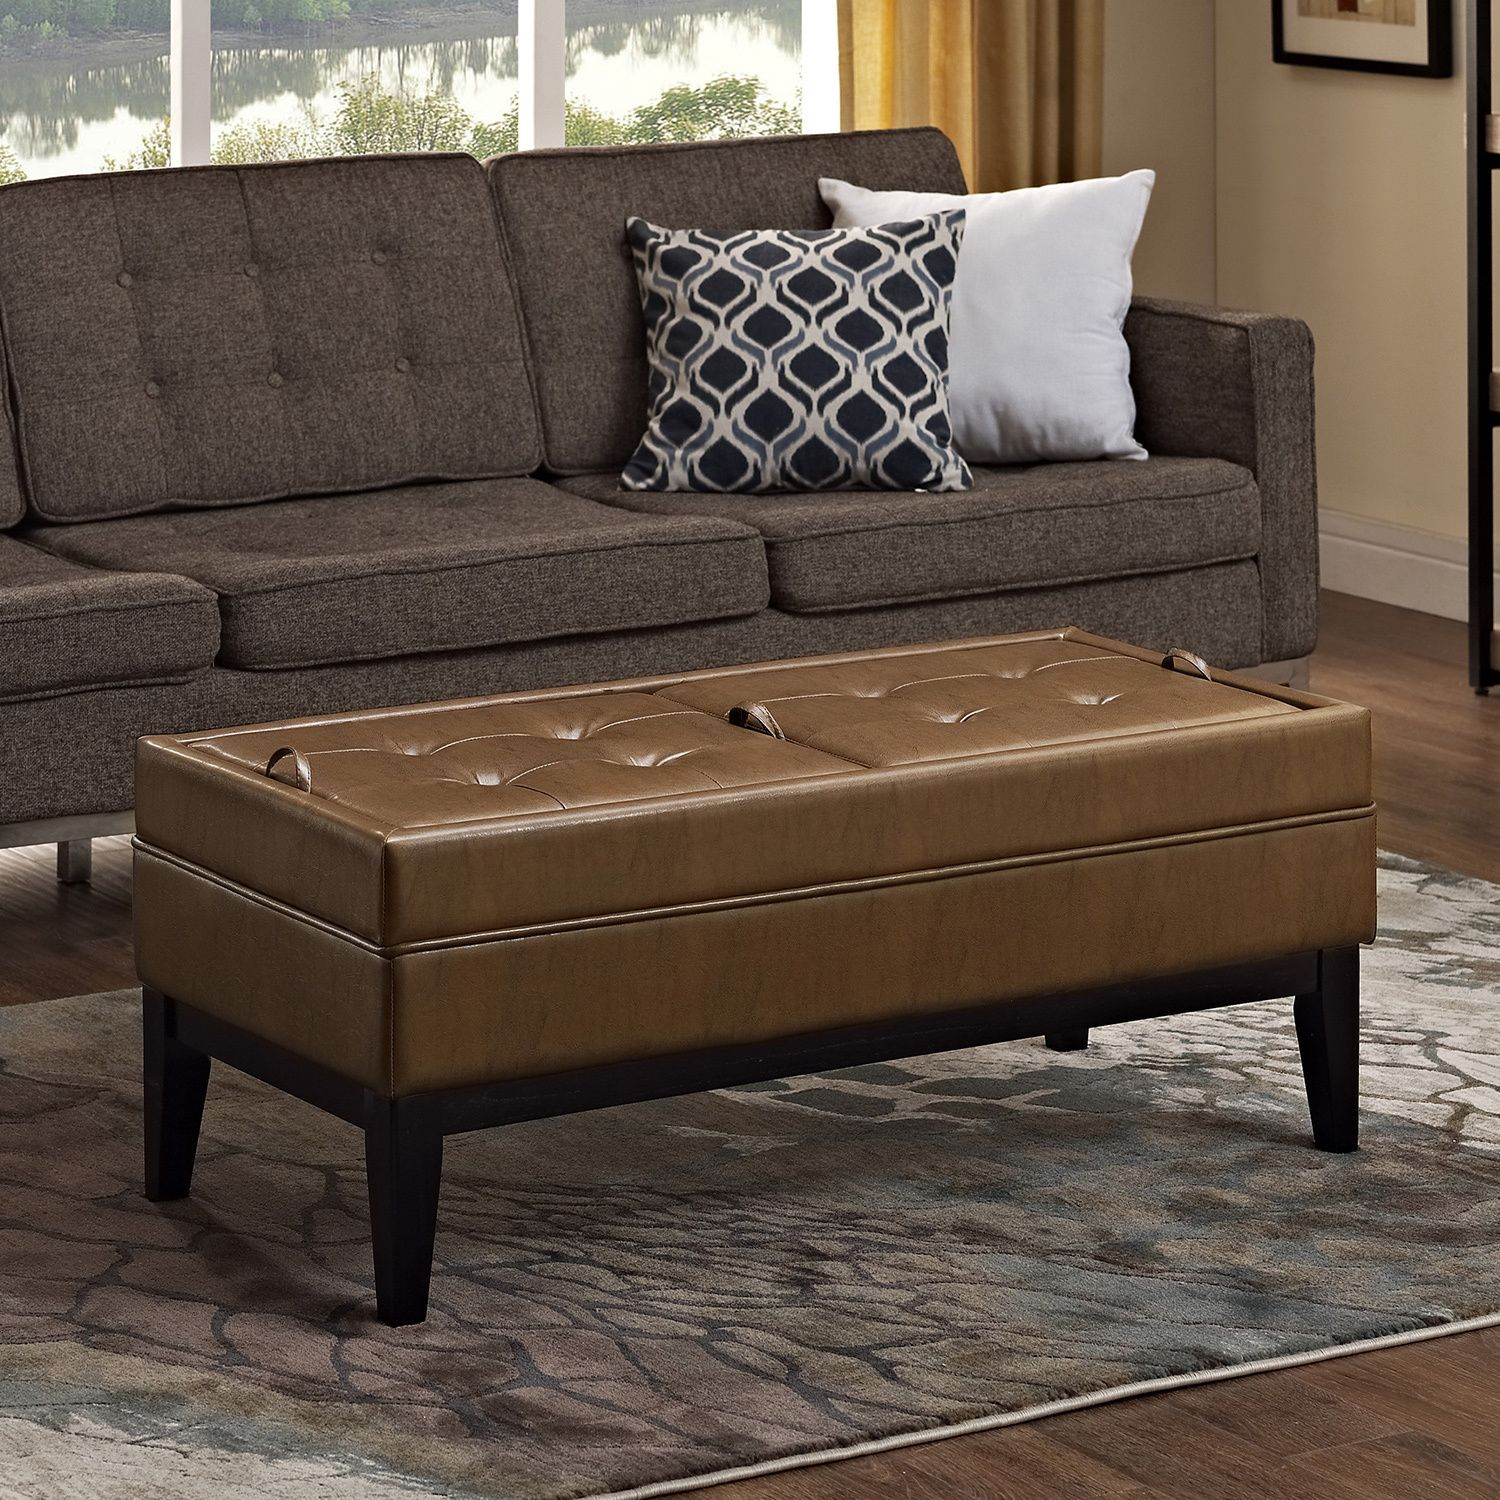 This Multi Use Storage Ottoman Functions As A Seat Coffee Table Or Foot Rest For Your Home Reversible Cushioned Panels Provide Both Sitting Serving